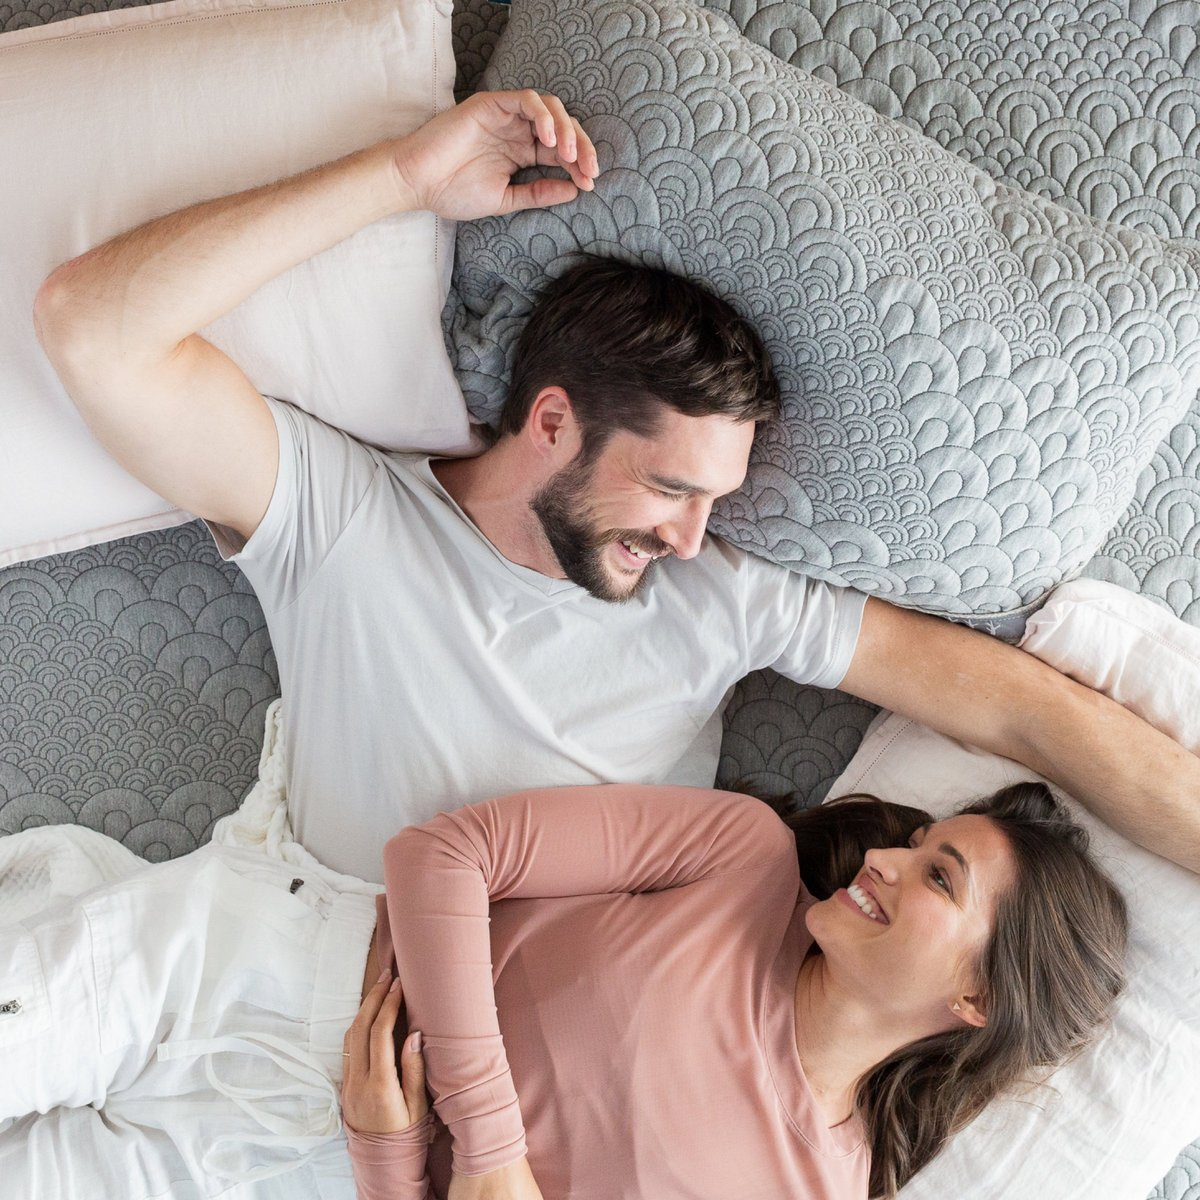 is the crystal cove pillow comfortable for side sleepers?